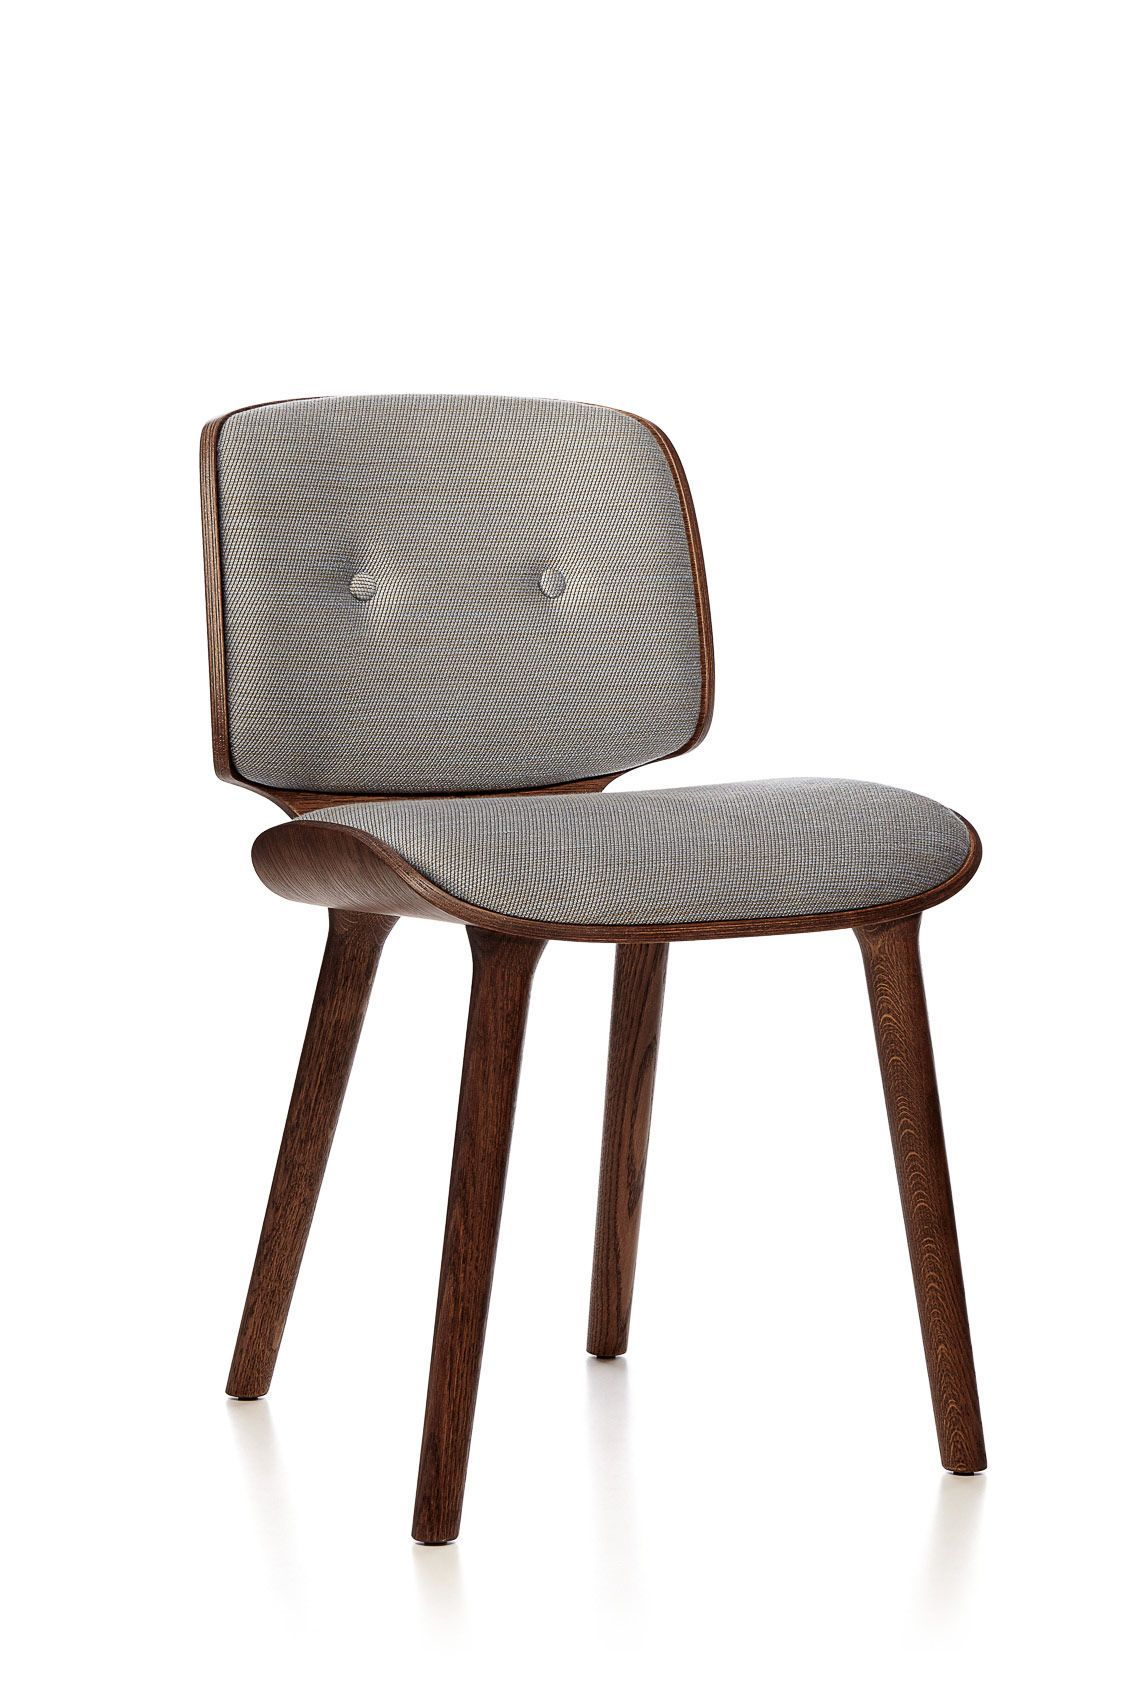 baker tufted dining chairs bernhardt chair and ottoman nut by marcel wanders cute furniture